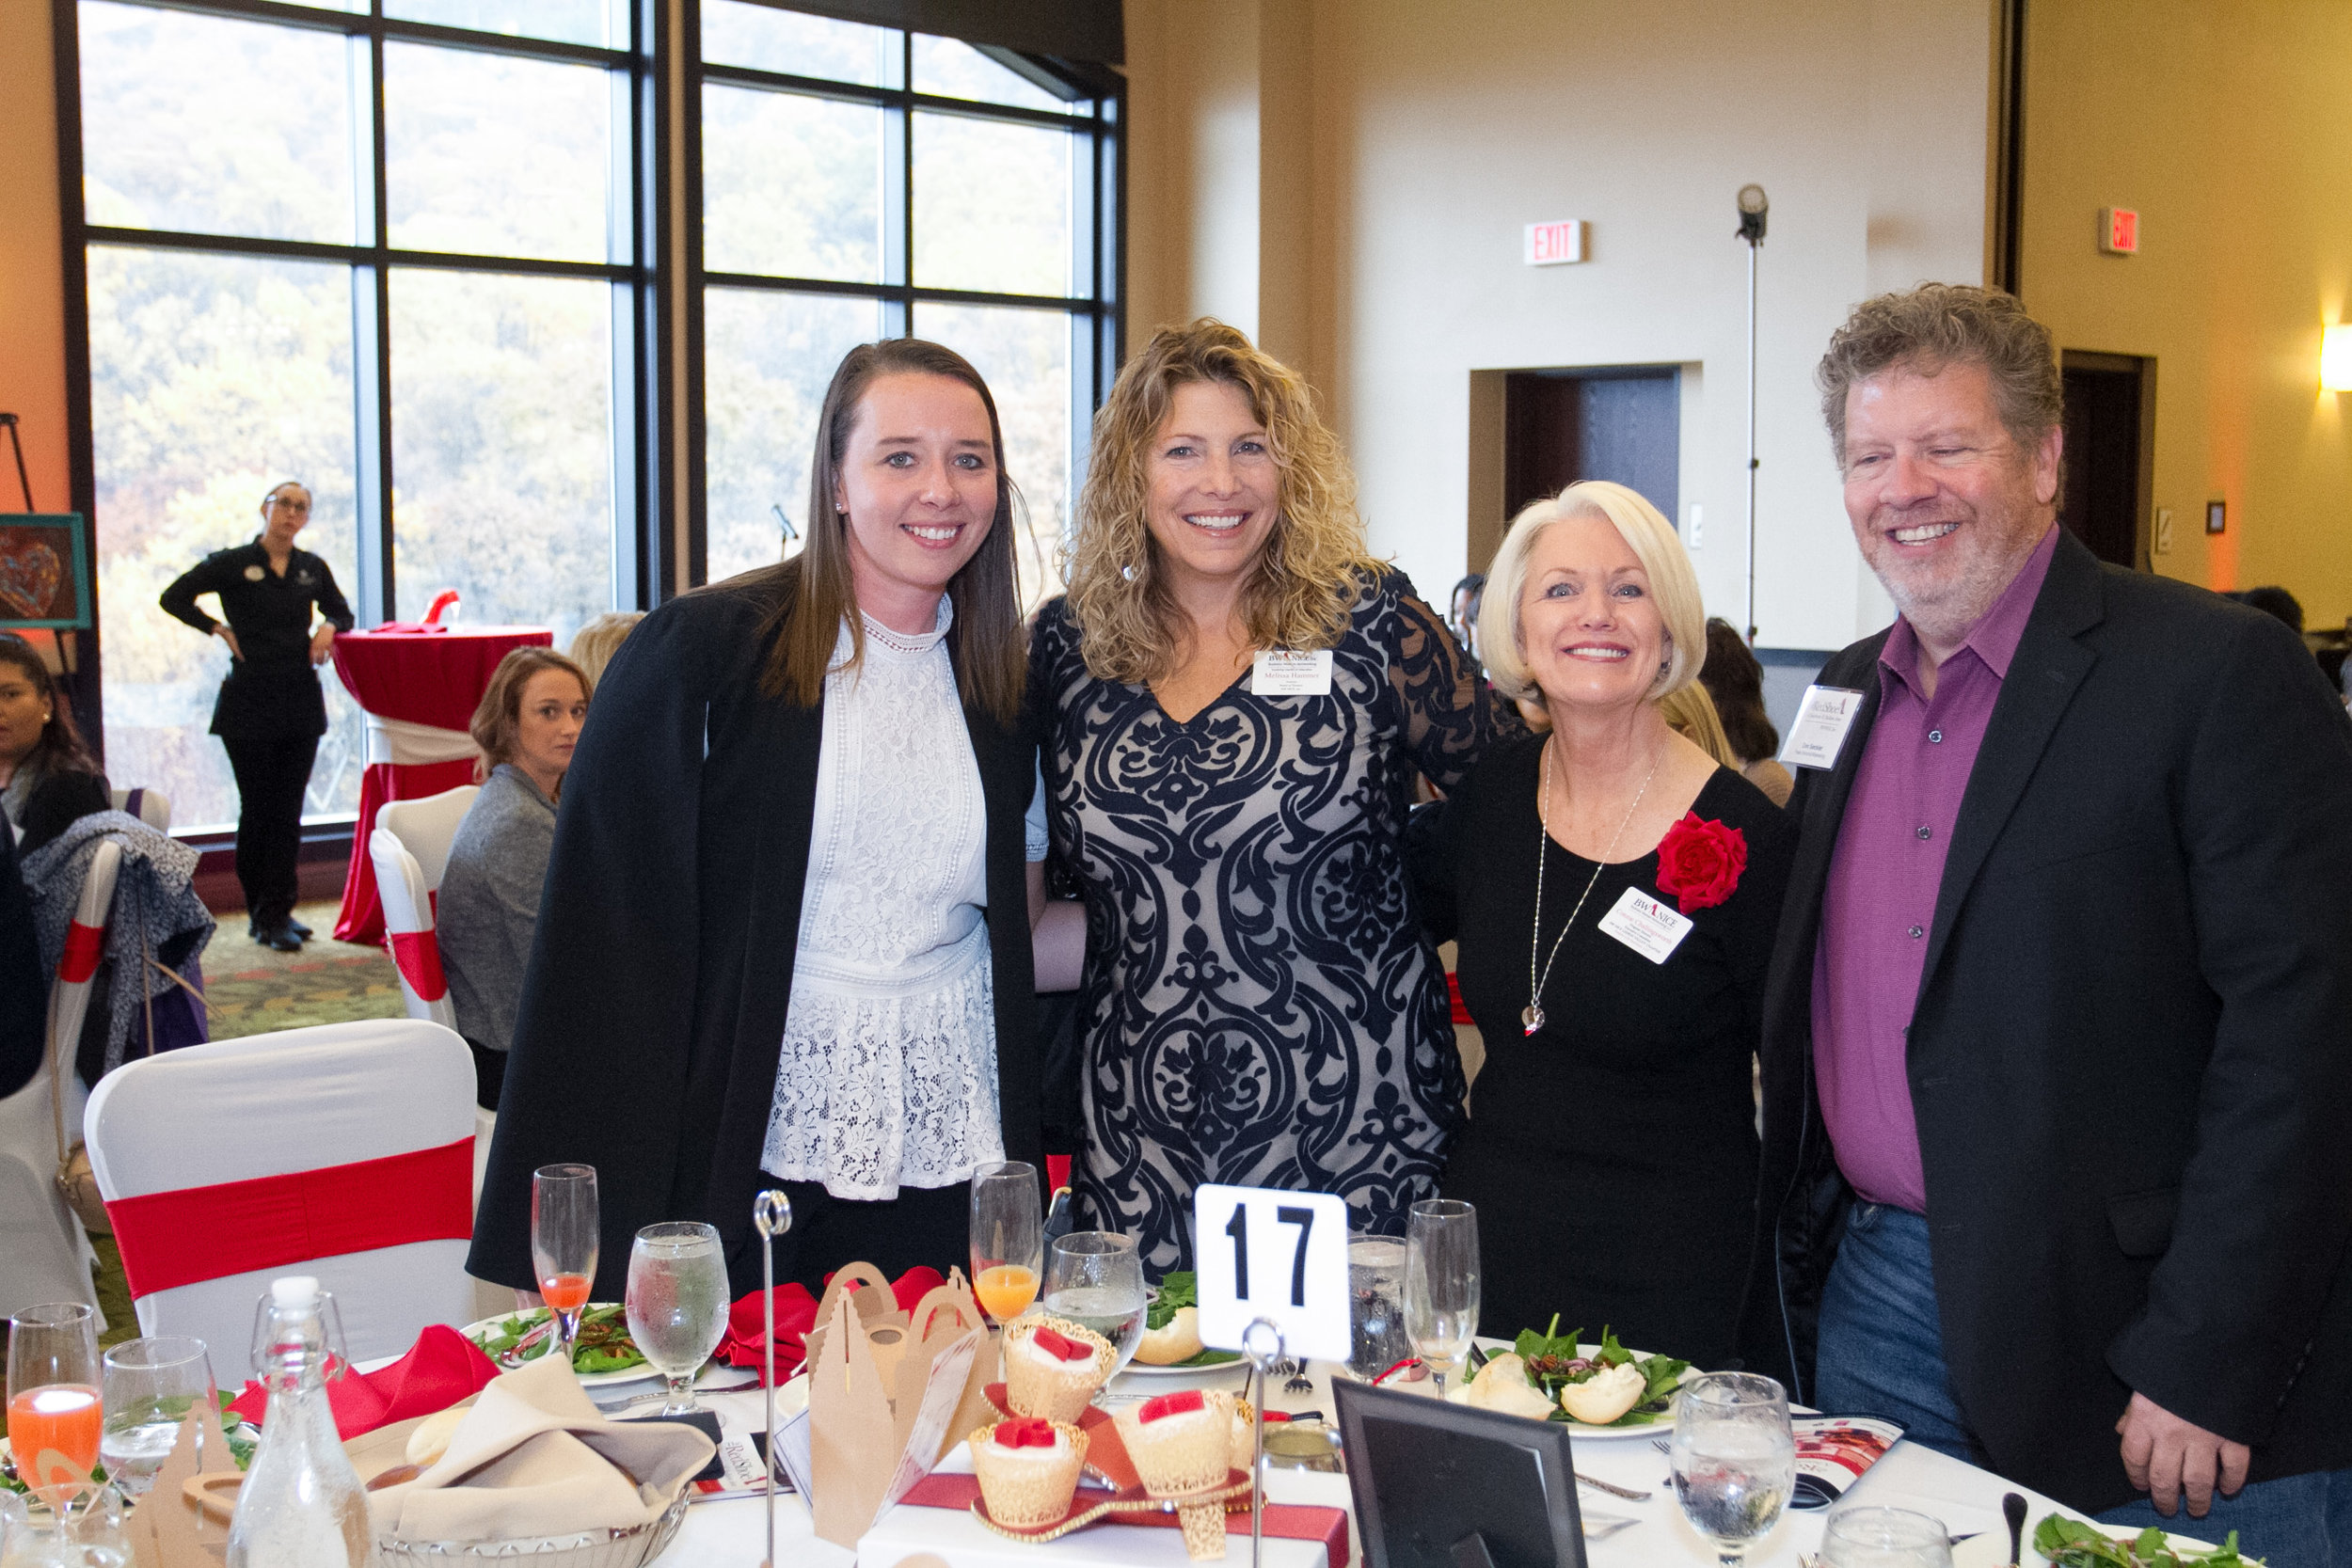 LightMaster-Studios-BWNice-Monroe-Chapter-Red-Shoes-Event-Camelback-lodge-2018-9831.jpg